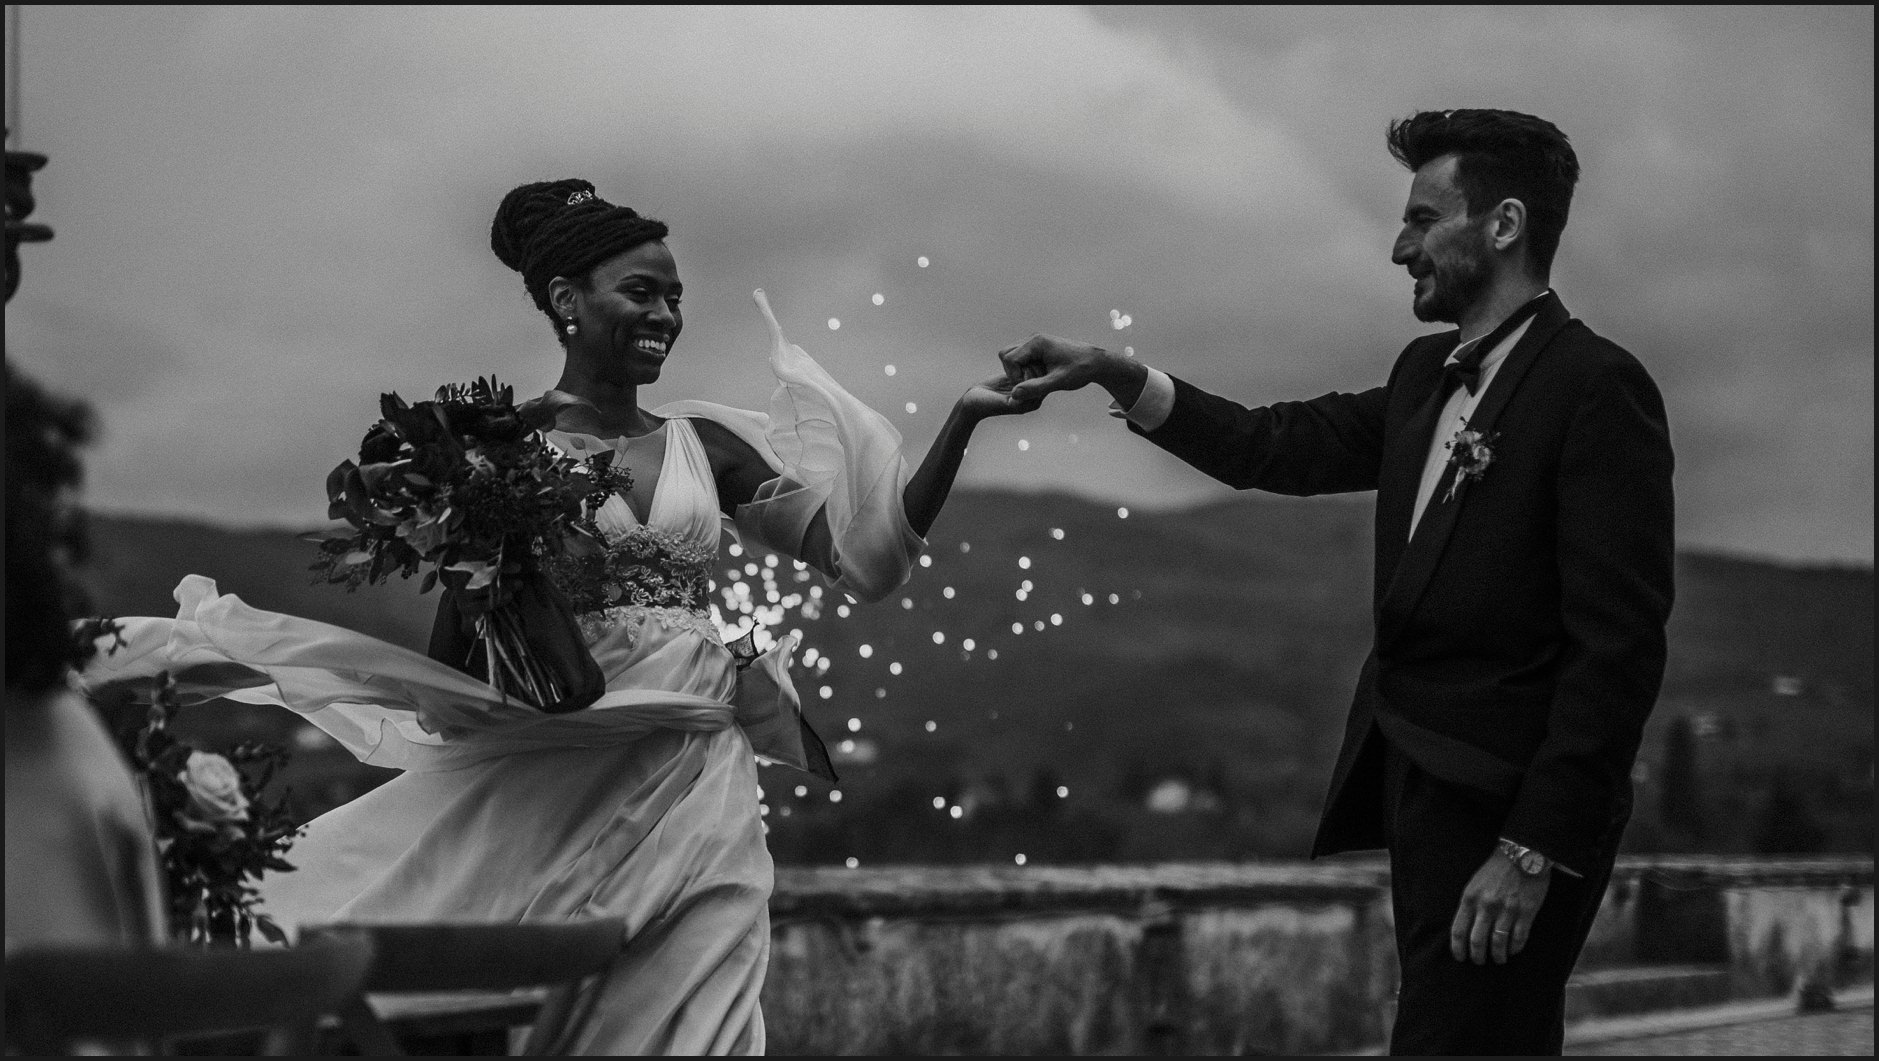 bride, groom, wedding, villa medicea di lilliano, tuscany, special effects, fireworks, black and white, wind